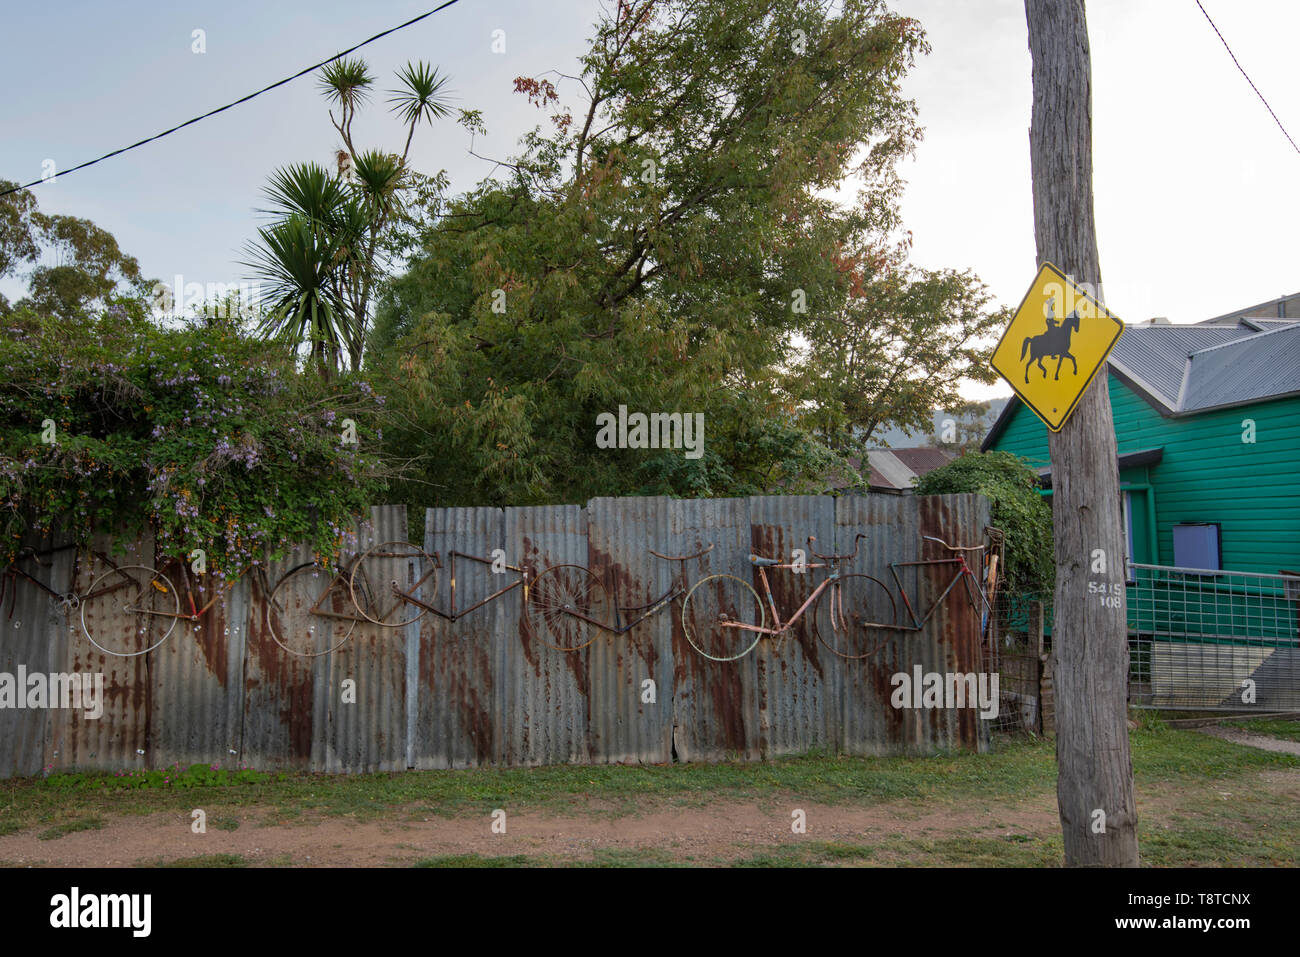 A sign in a country suburban street warning drivers of horse riders ahead and a corrugated iron fence with decorative bicycle parts stuck to it. - Stock Image